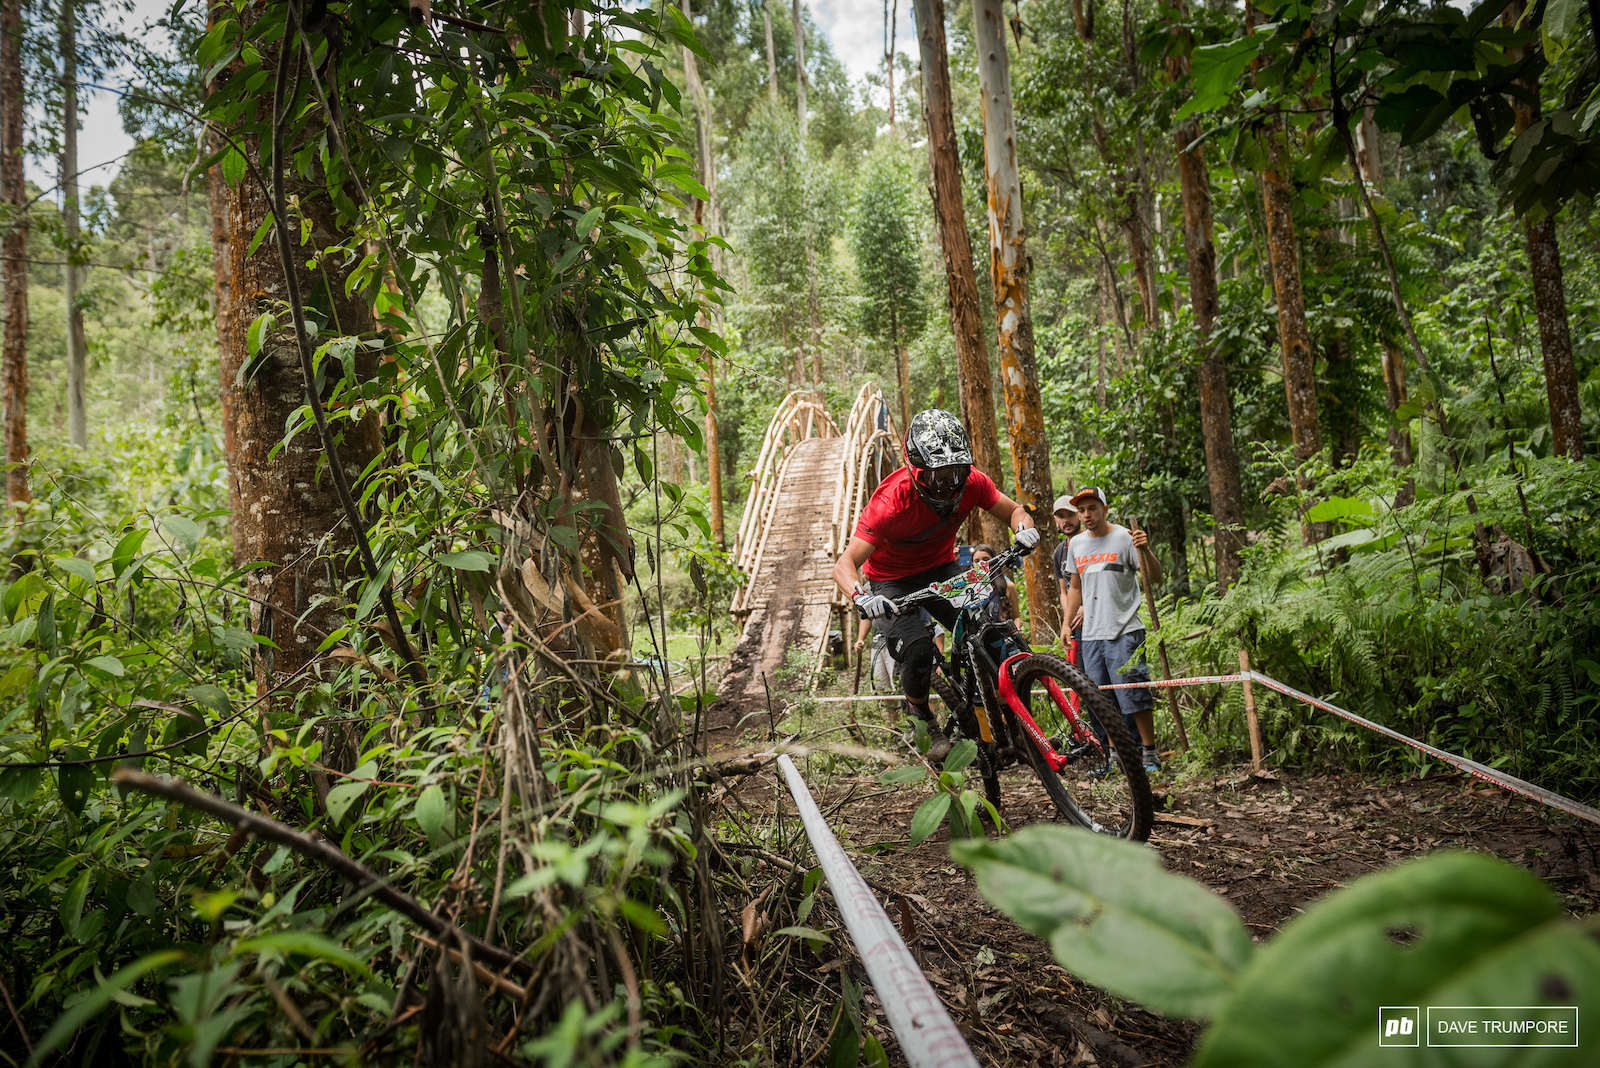 After receiving a 20 second penalty for illegally shuttling a stage in practice Adrien Dailly would be pushed down from 5th to 9th in Colombia.